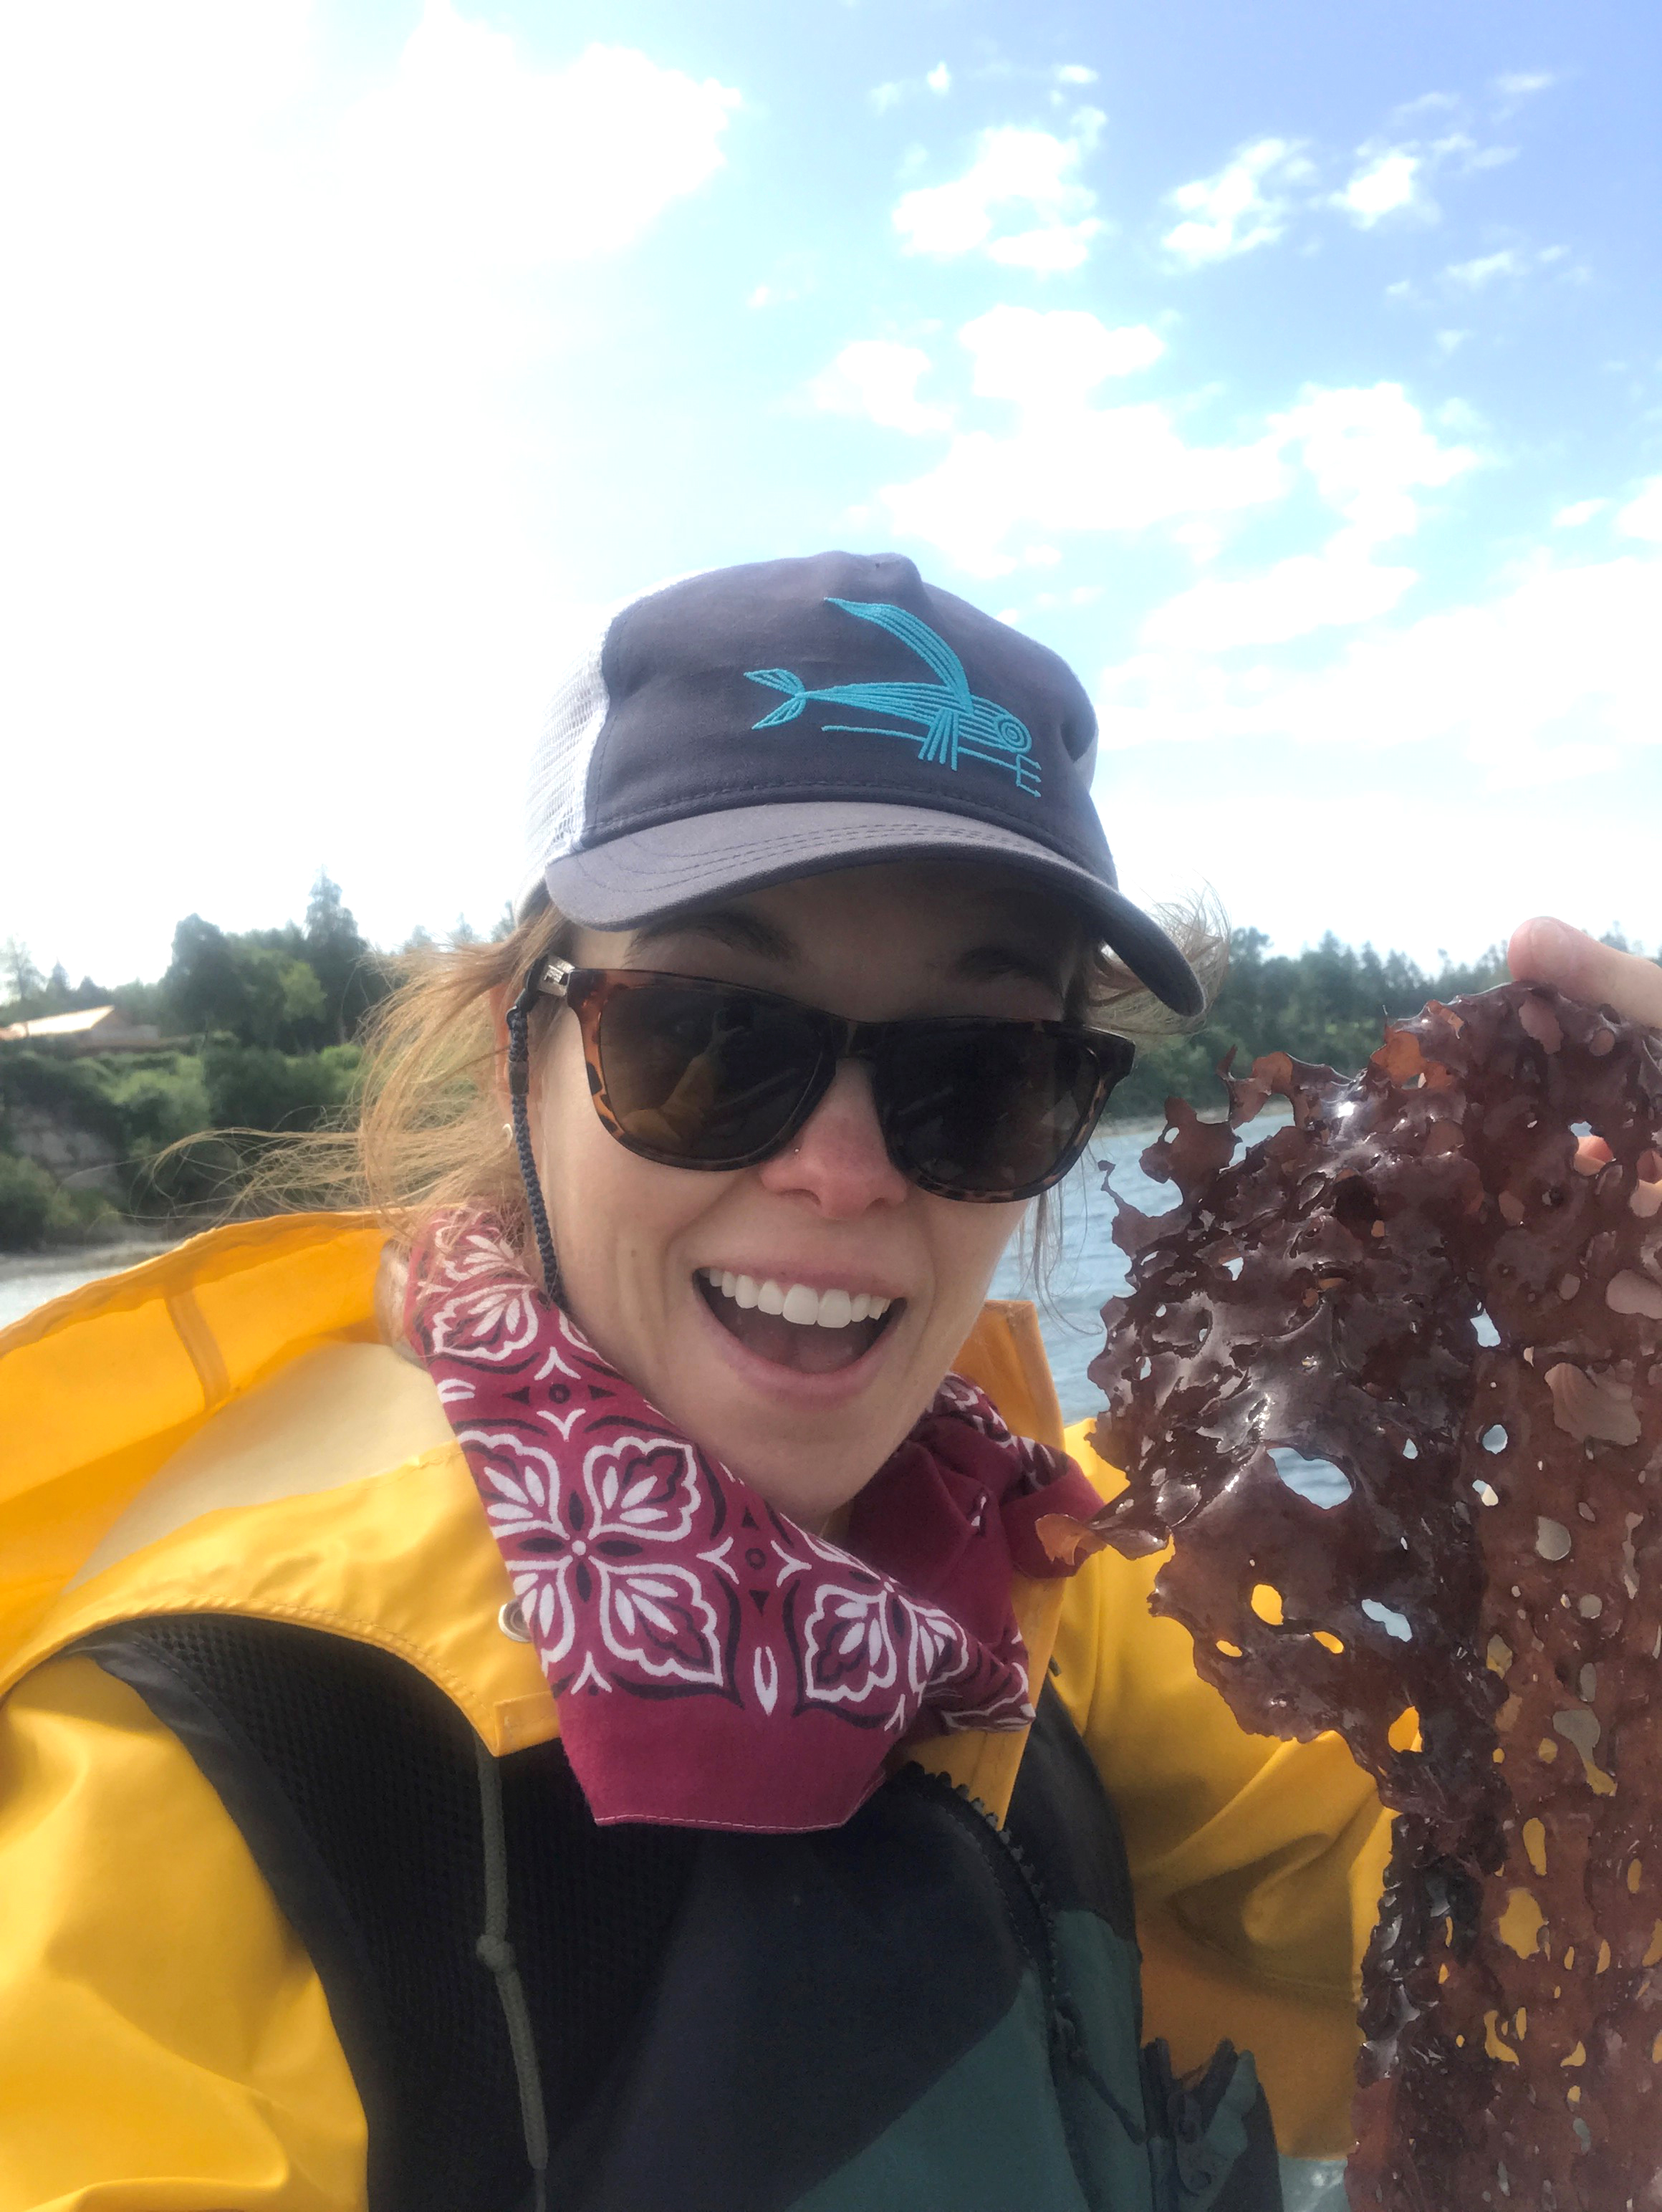 A smiling female scientist in yellow foul weather gear, red bandana and life jacket holds up a large piece of red seaweed on a sunny day.